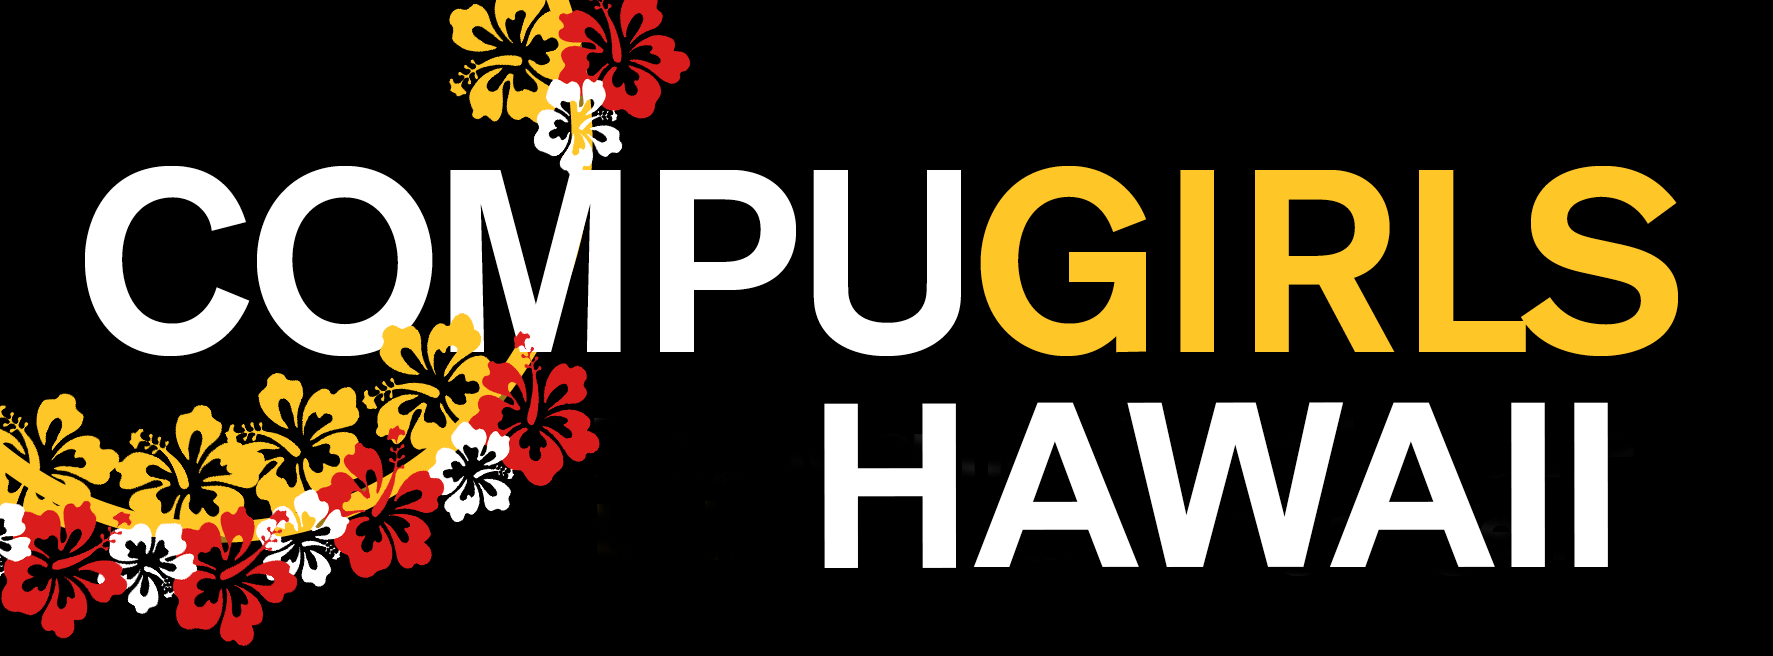 CompuGirls Hawaii Logo